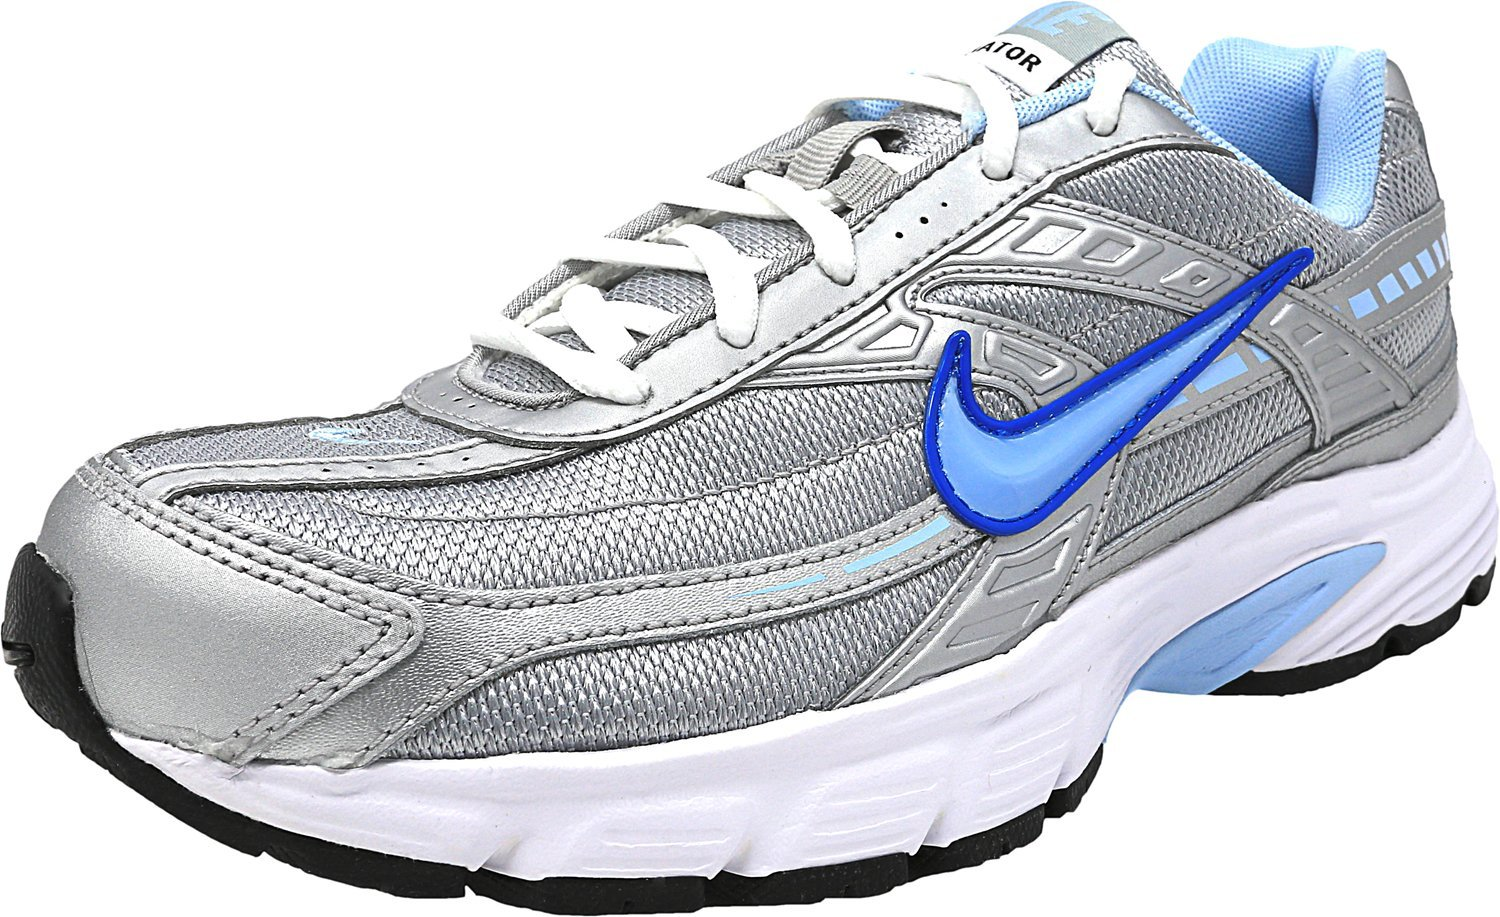 NIKE Women's Initiator Running Shoes B071G24VVG 6 C/D US|Mtlc Silver/Ice Blue White Gry